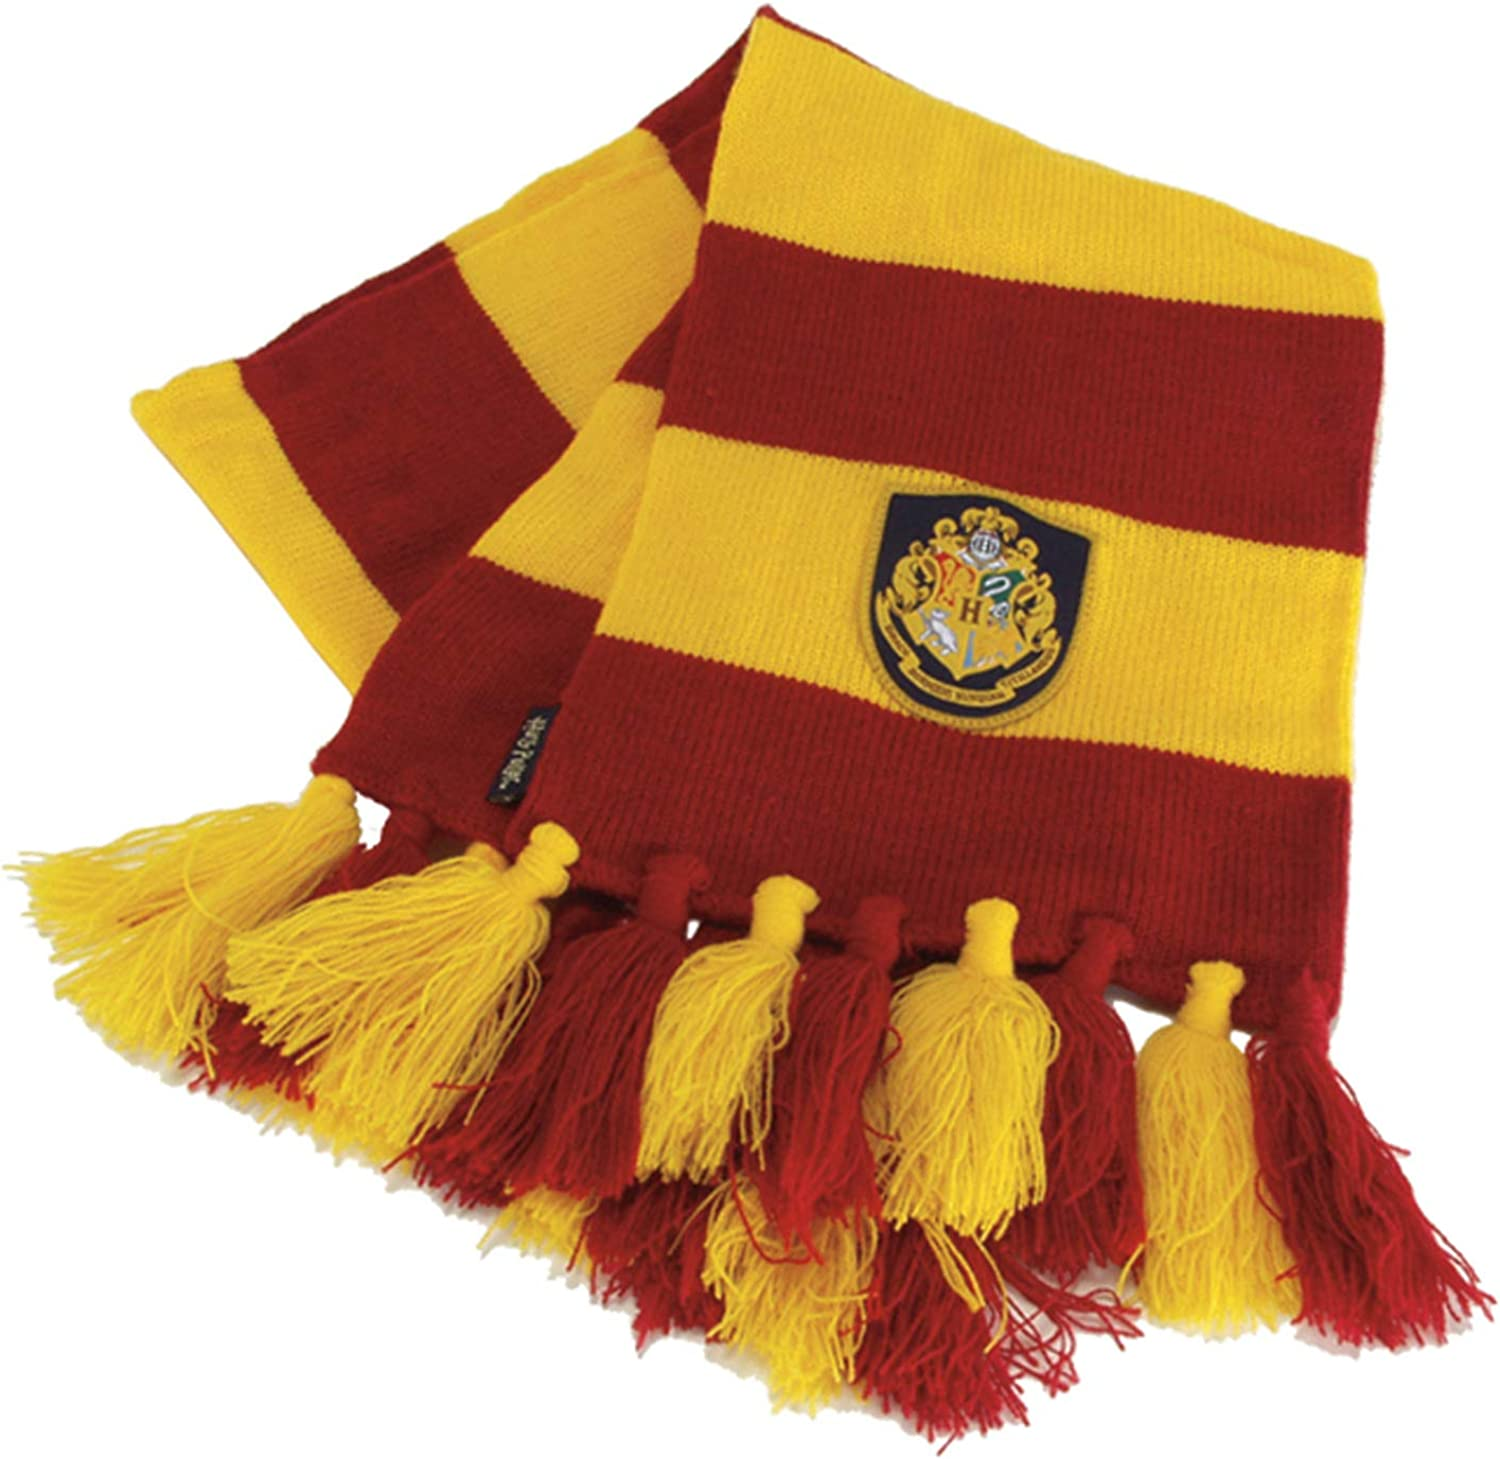 Warner Brothers Harry Potter Hogwart Gryffindor House Knit Scarf for Adults and Kids Red: Clothing